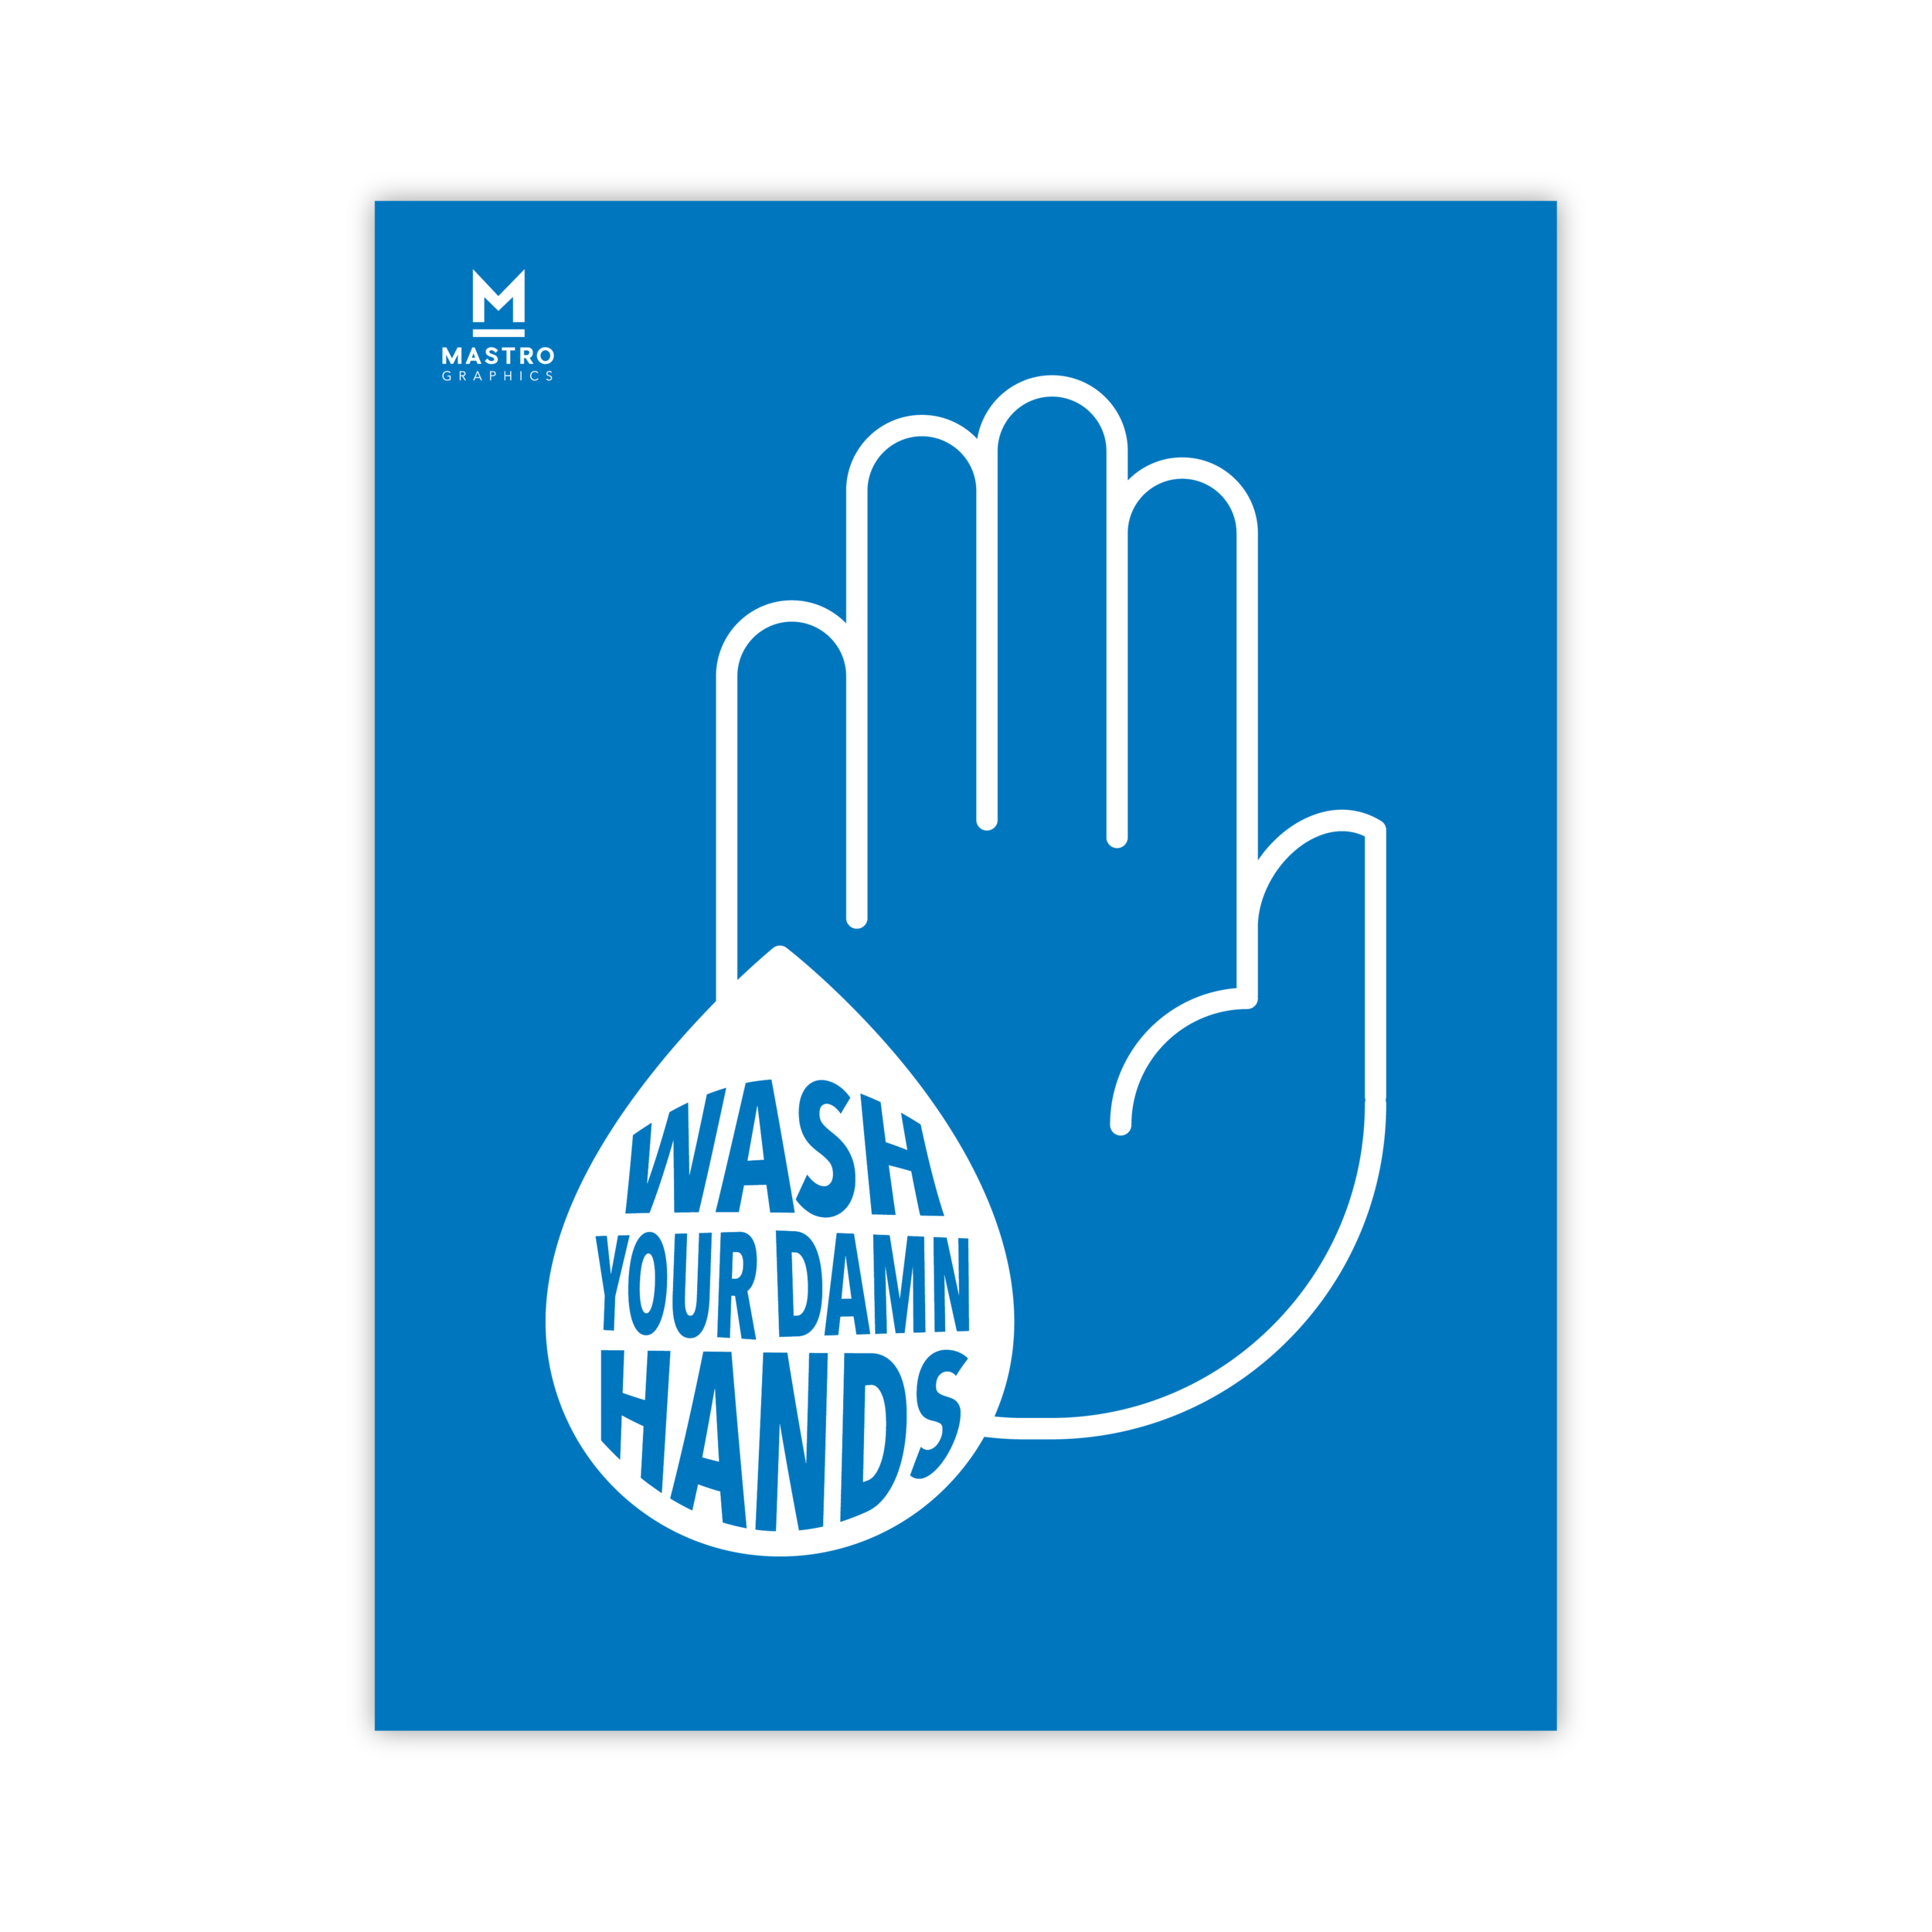 Wash Your Damn Hands Mastro Graphics More than 12 million free png images available for download. mastro graphics